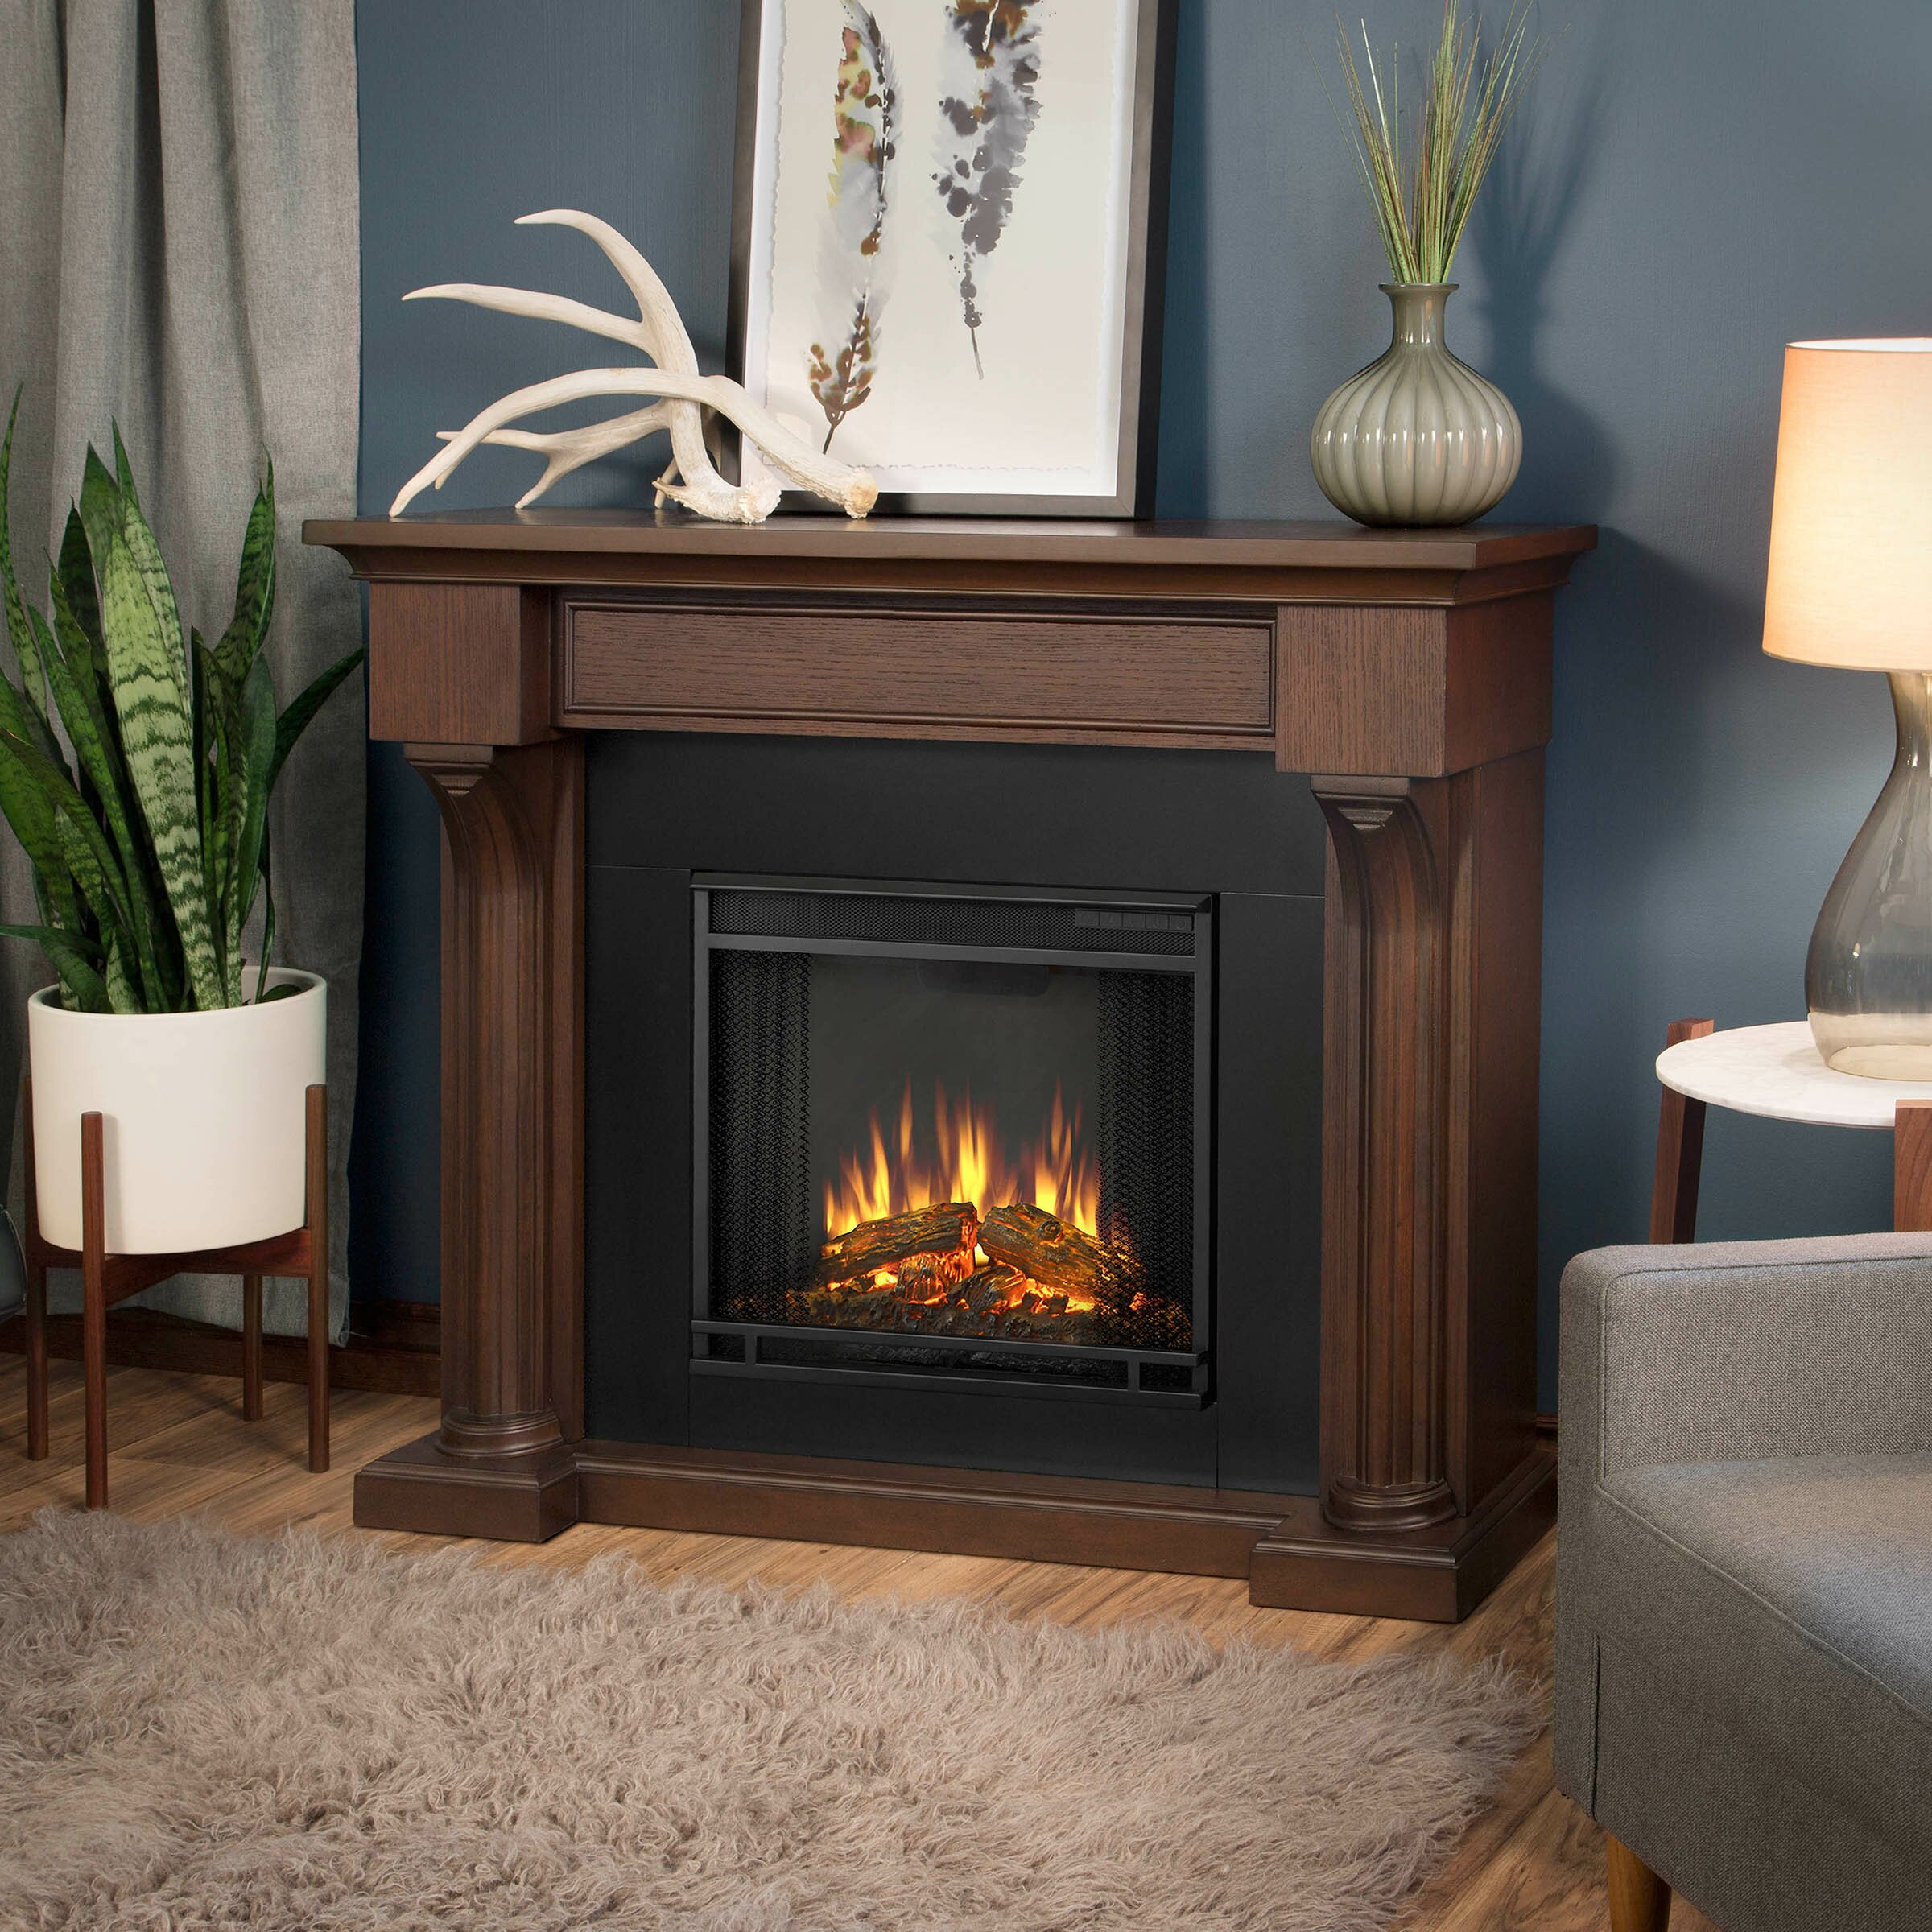 uncategorized for trend and wayfair money sided an awesome f fireplace electric does save concept picture